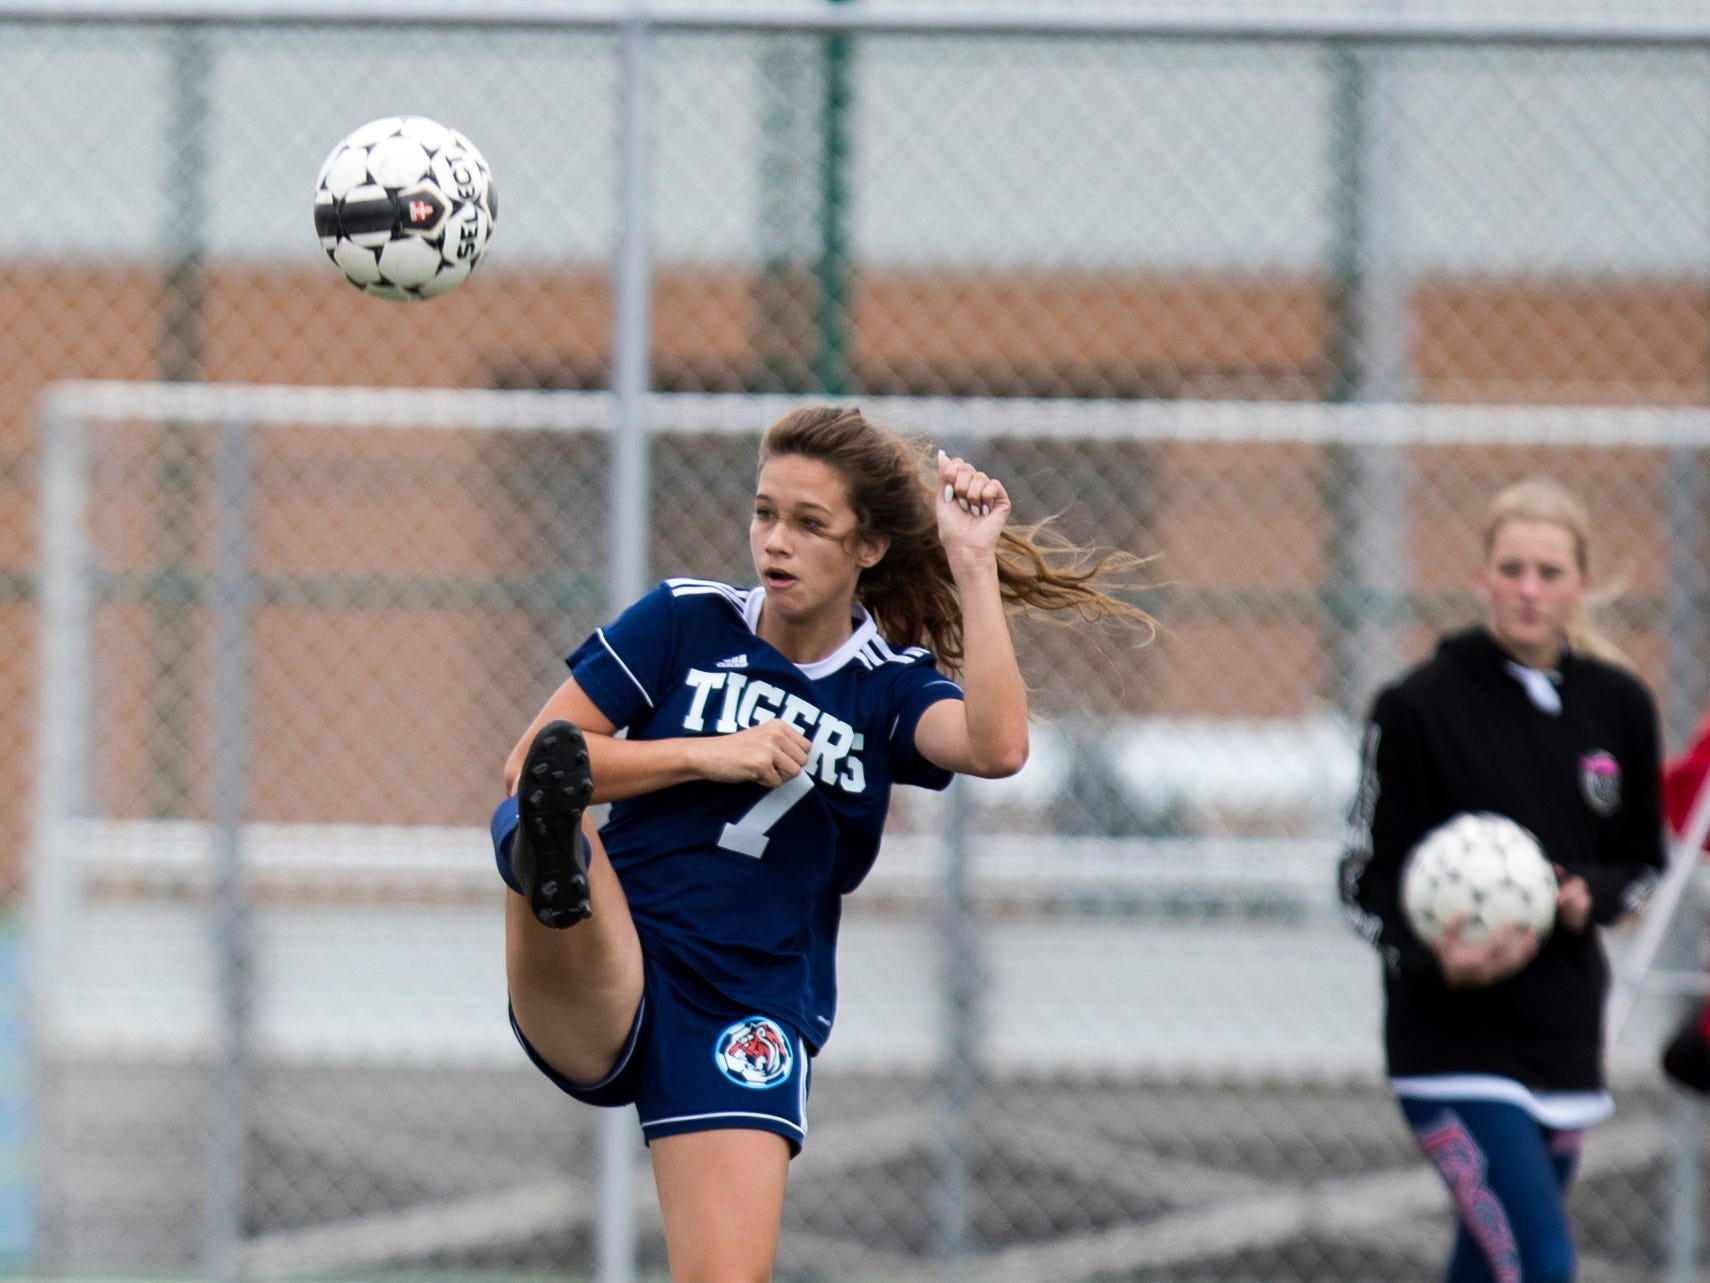 Carroll's Audrey Caster passes the ball in the game against Veterans Memorial in the Mira's Soccer Tournament at Veterans Memorial High School on Friday, January 11, 2019. The Eagles won the game 5-0.